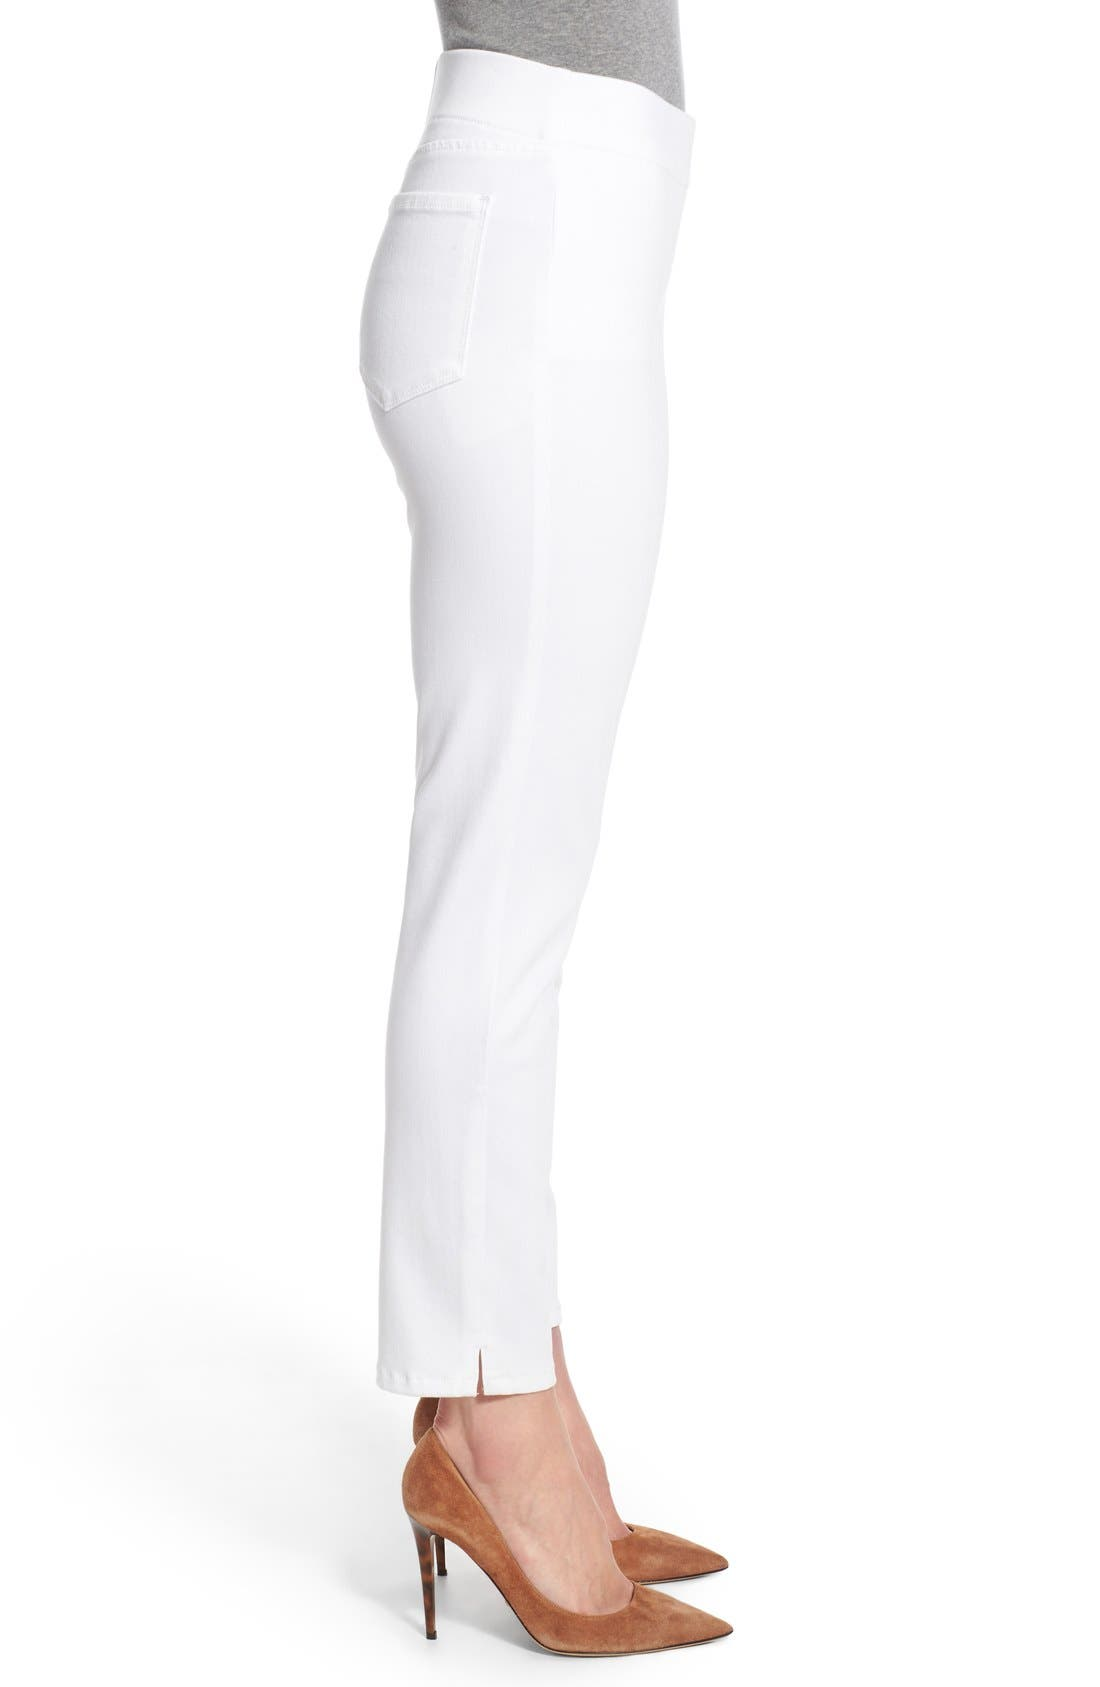 Alternate Image 3  - NYDJ 'Millie' Pull-On Stretch Ankle Skinny Jeans (Endless White) (Regular & Petite)